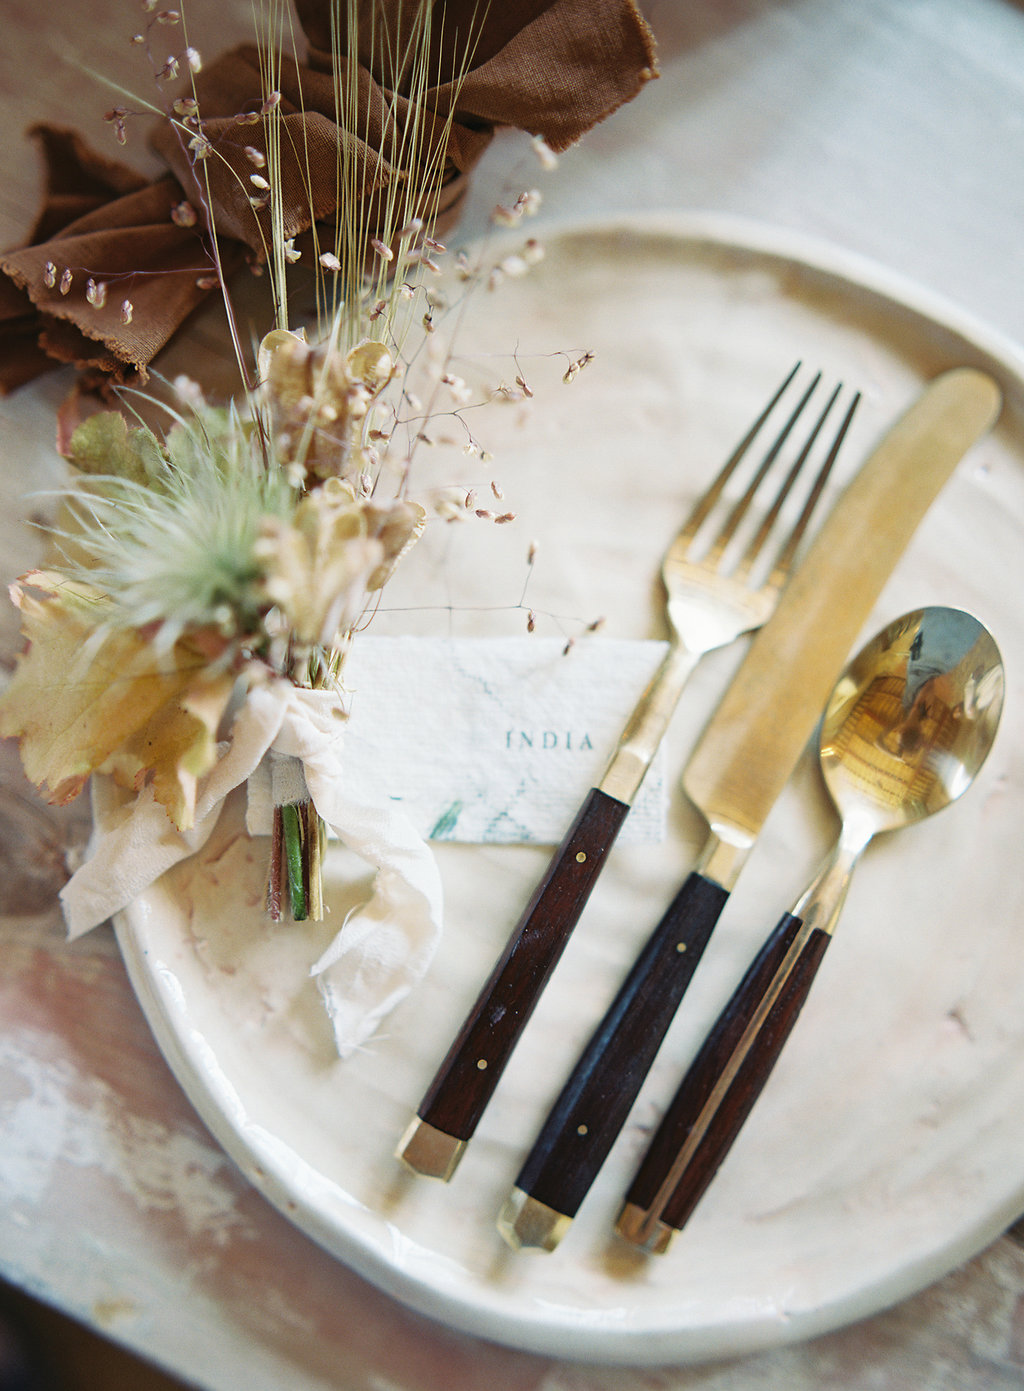 Litha Floral Workshop and Buttonhole Tutorial on cottagehill.co22.jpg